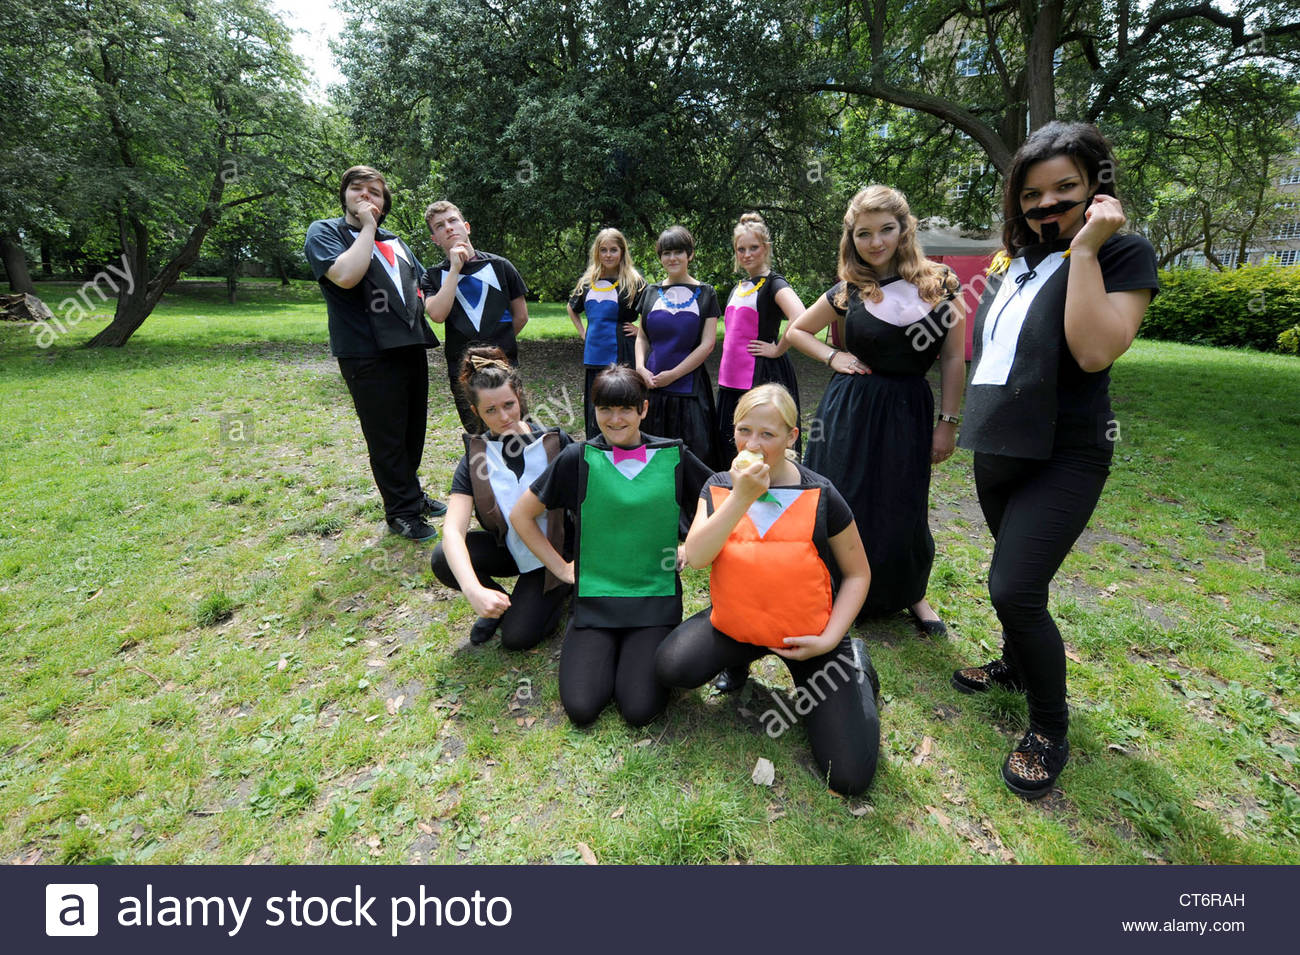 Varndean College students rehearse Shakespeare's 'Love's Labours Lost' which they are putting on - Stock Image